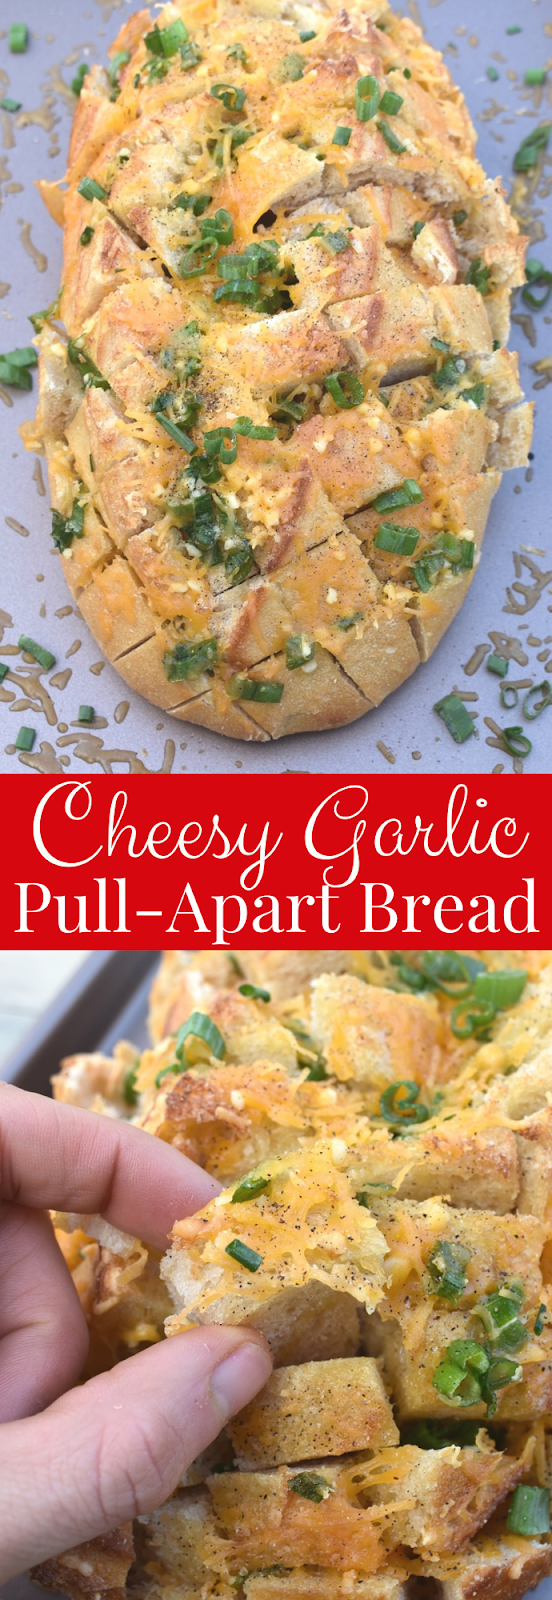 Cheesy Garlic Pull-Apart Bread recipe